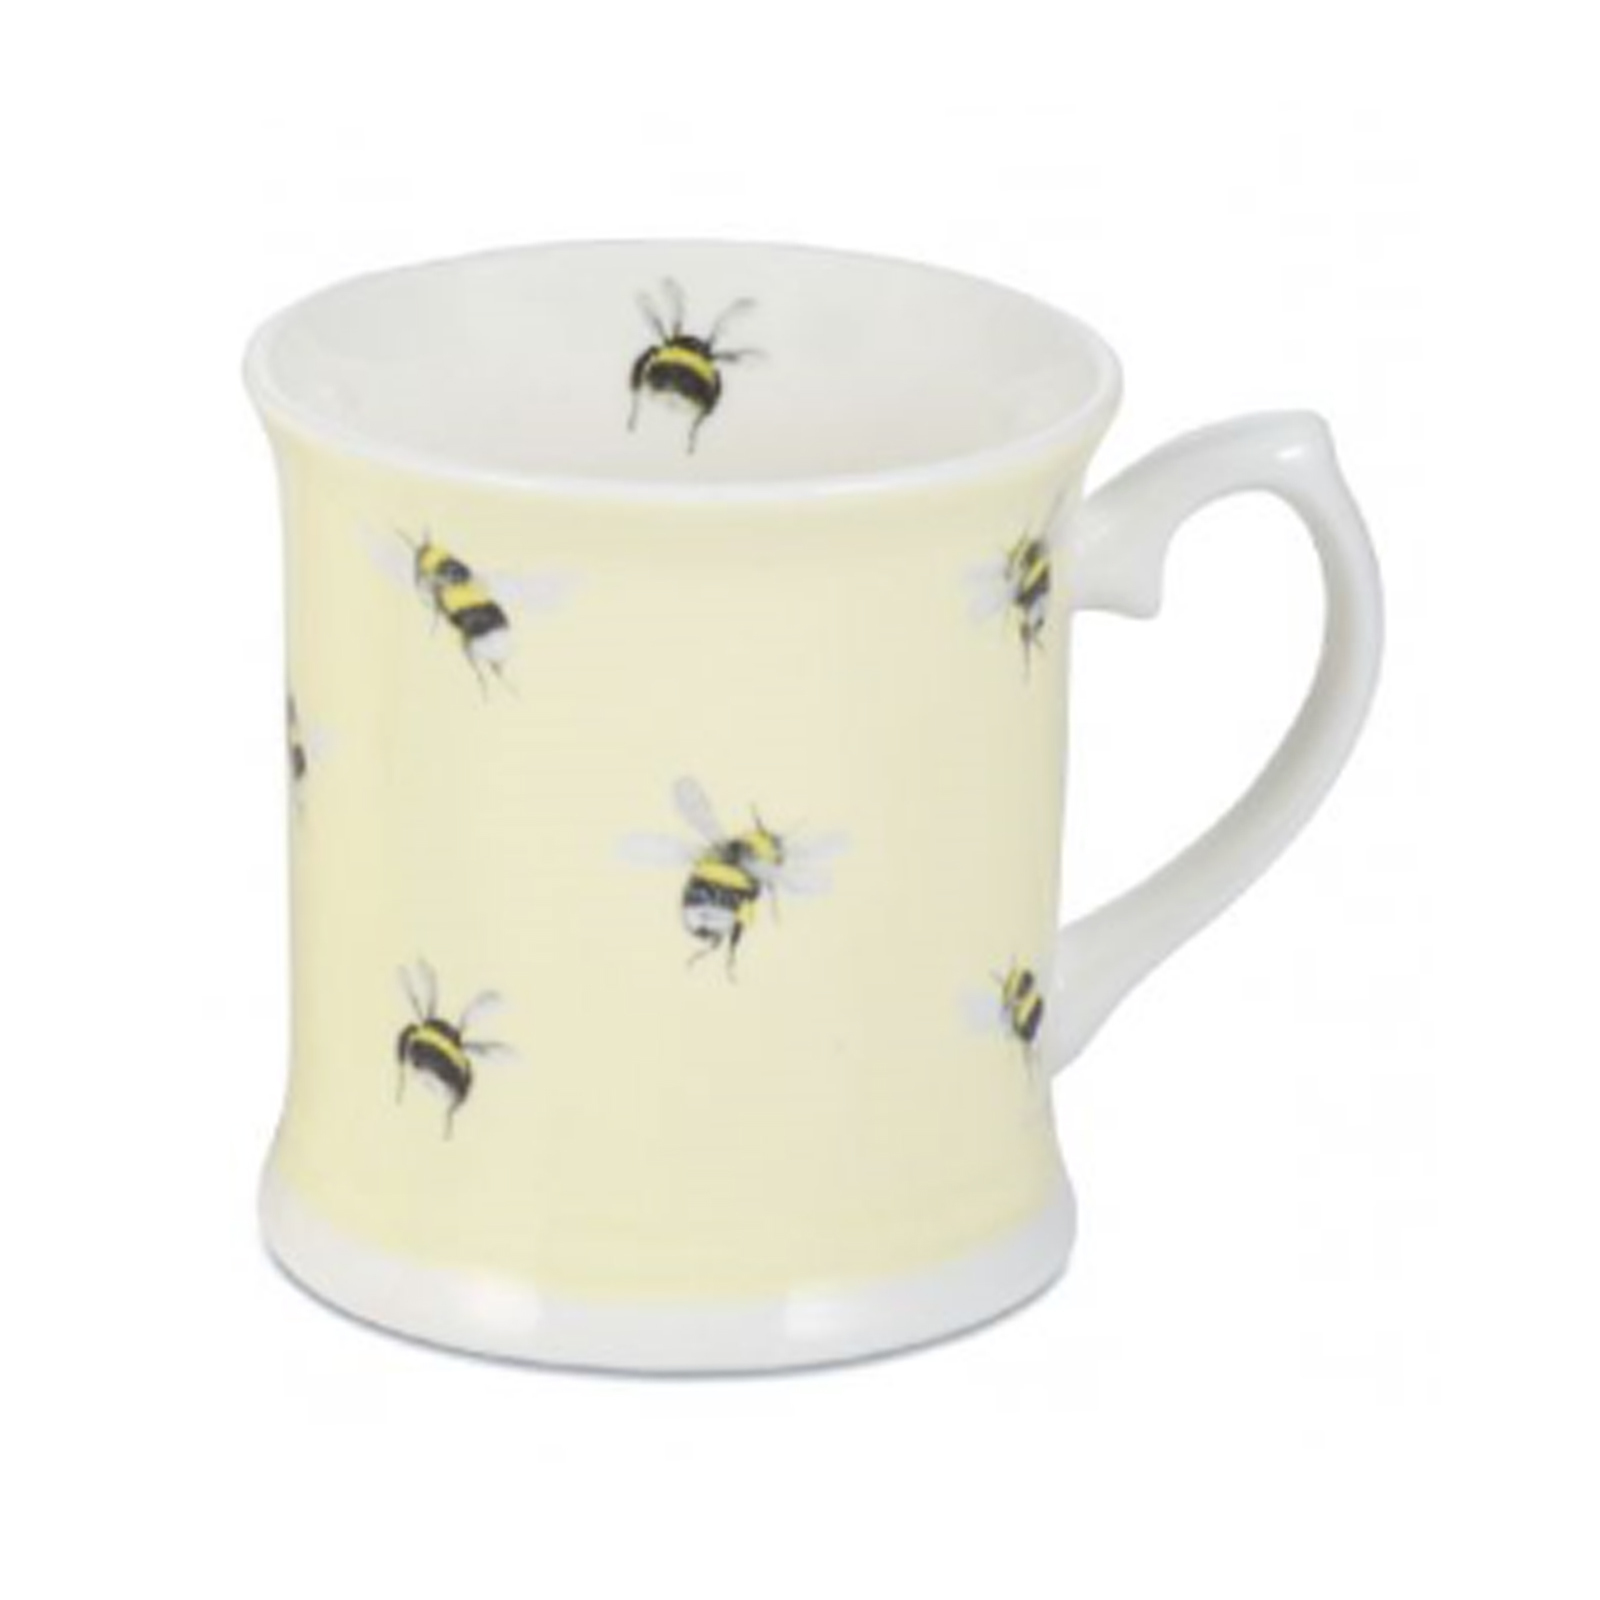 Bumble Bee on Yellow Bone China Mug by Mosney Mill